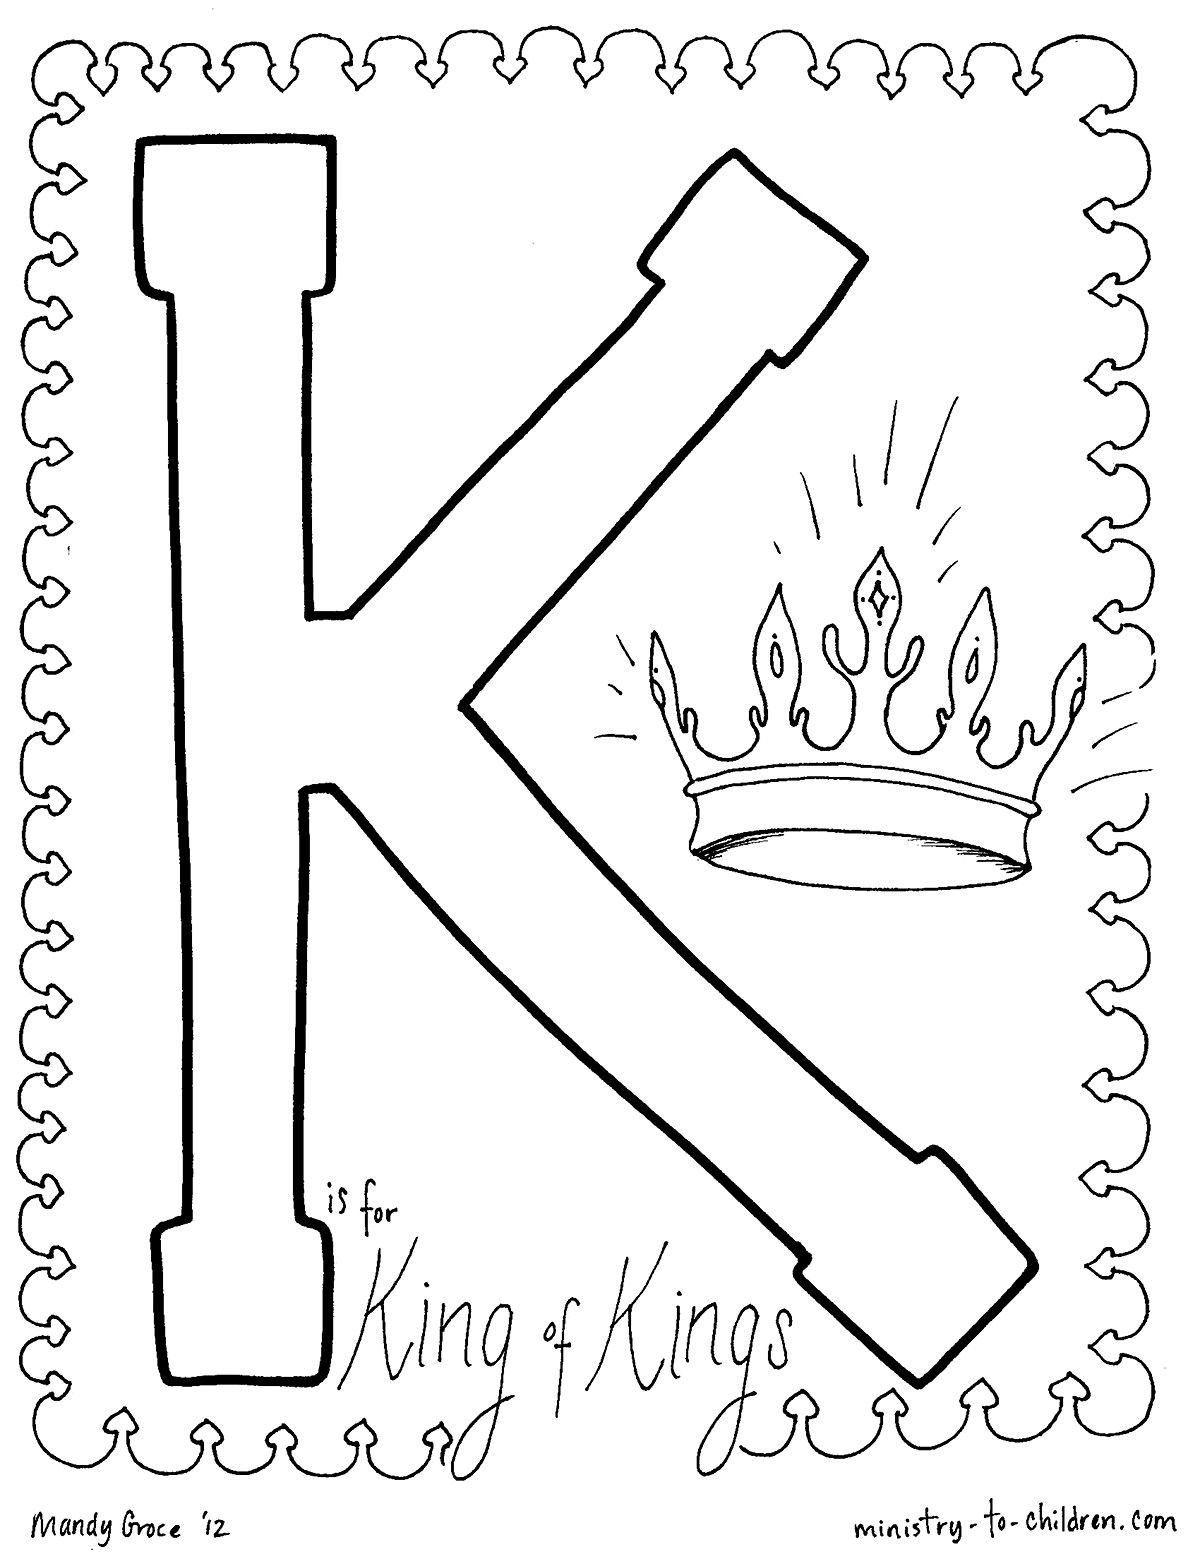 Free Christian Coloring Pages For Kids Children And Adults The Alphabet Warren Camp Desi Letter K Crafts Sunday School Coloring Sheets Christian Coloring